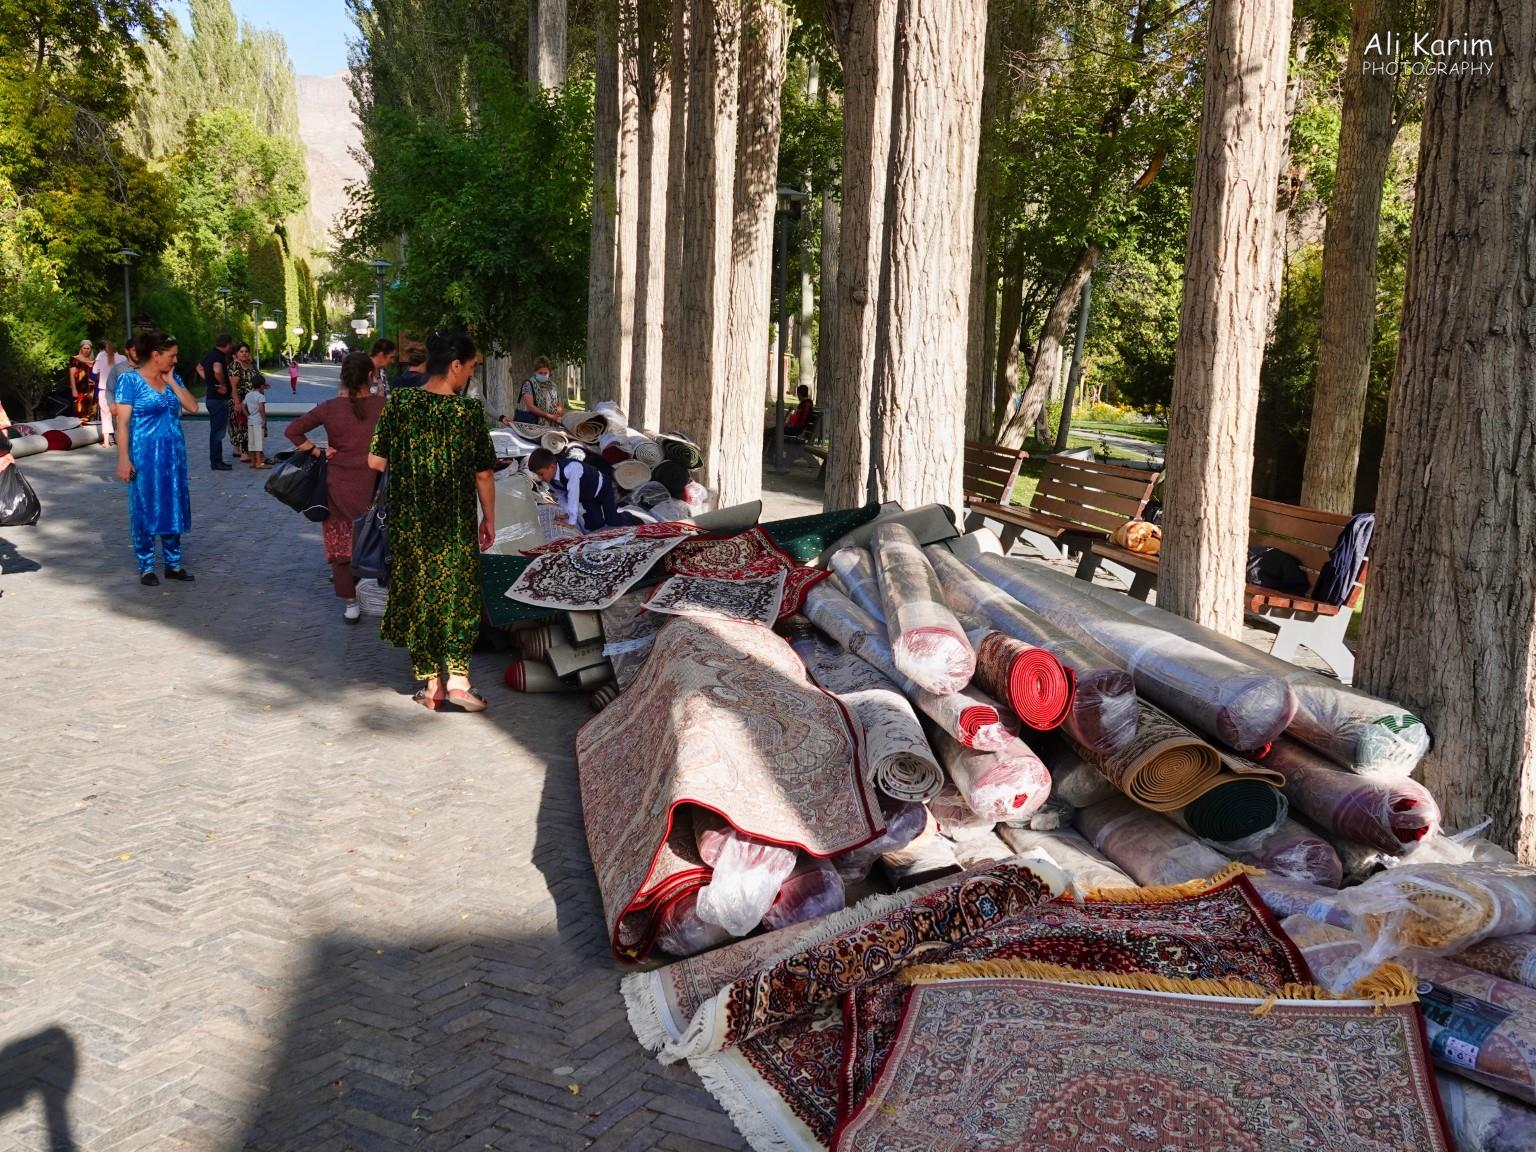 Onto Khorog, Tajikistan, Park entrance where carpets were on sale